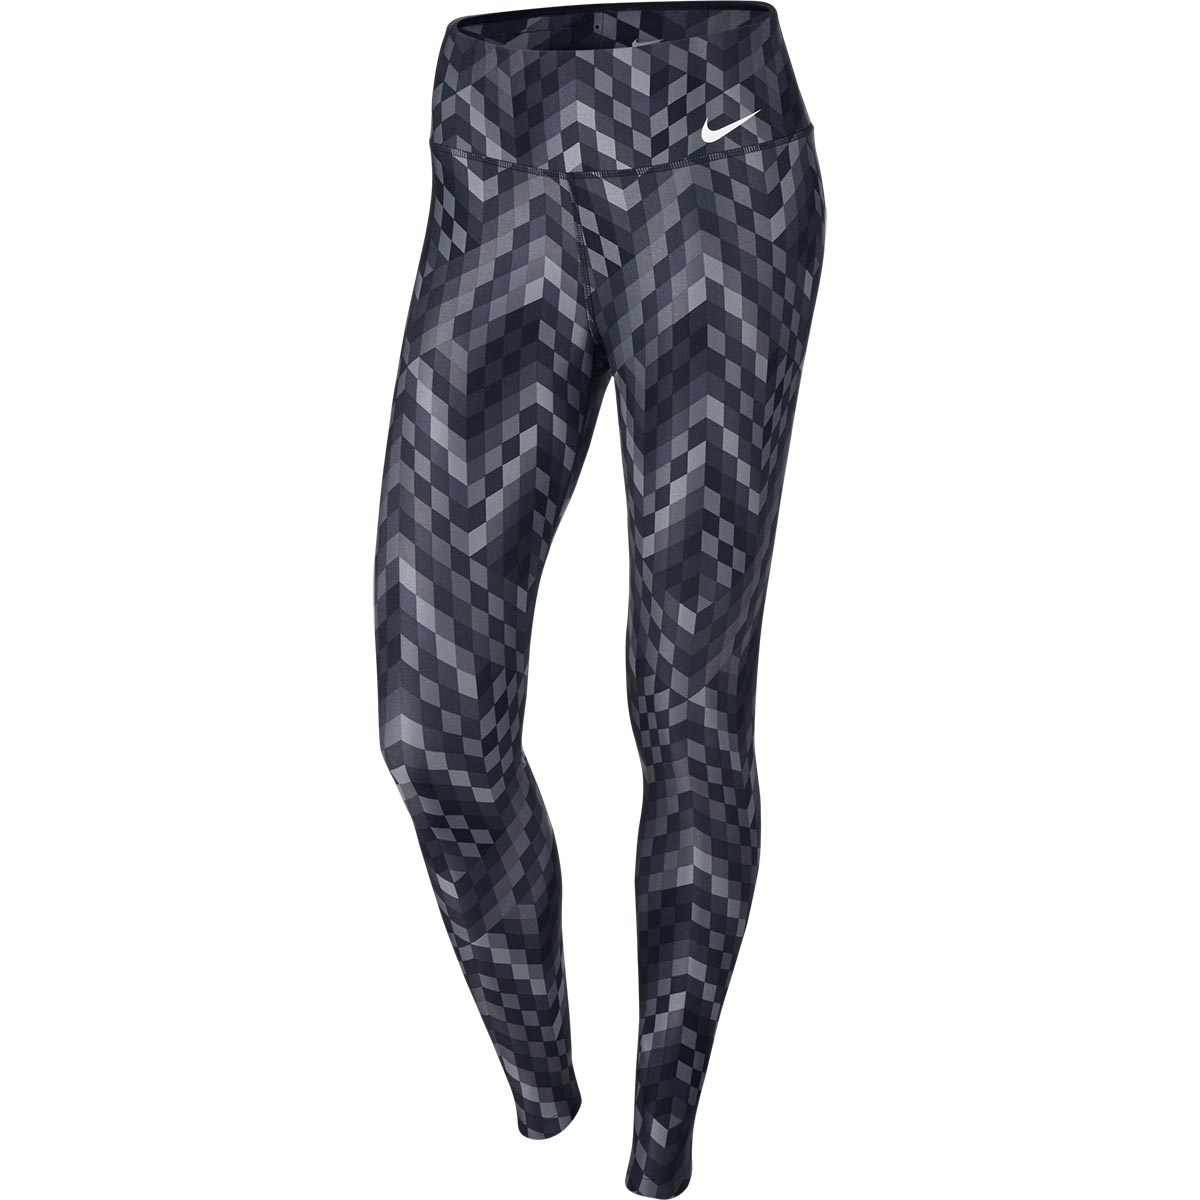 2fba3cf920b Buy Nike Womens Power Legend Traning Tights (Grey Black) Online India